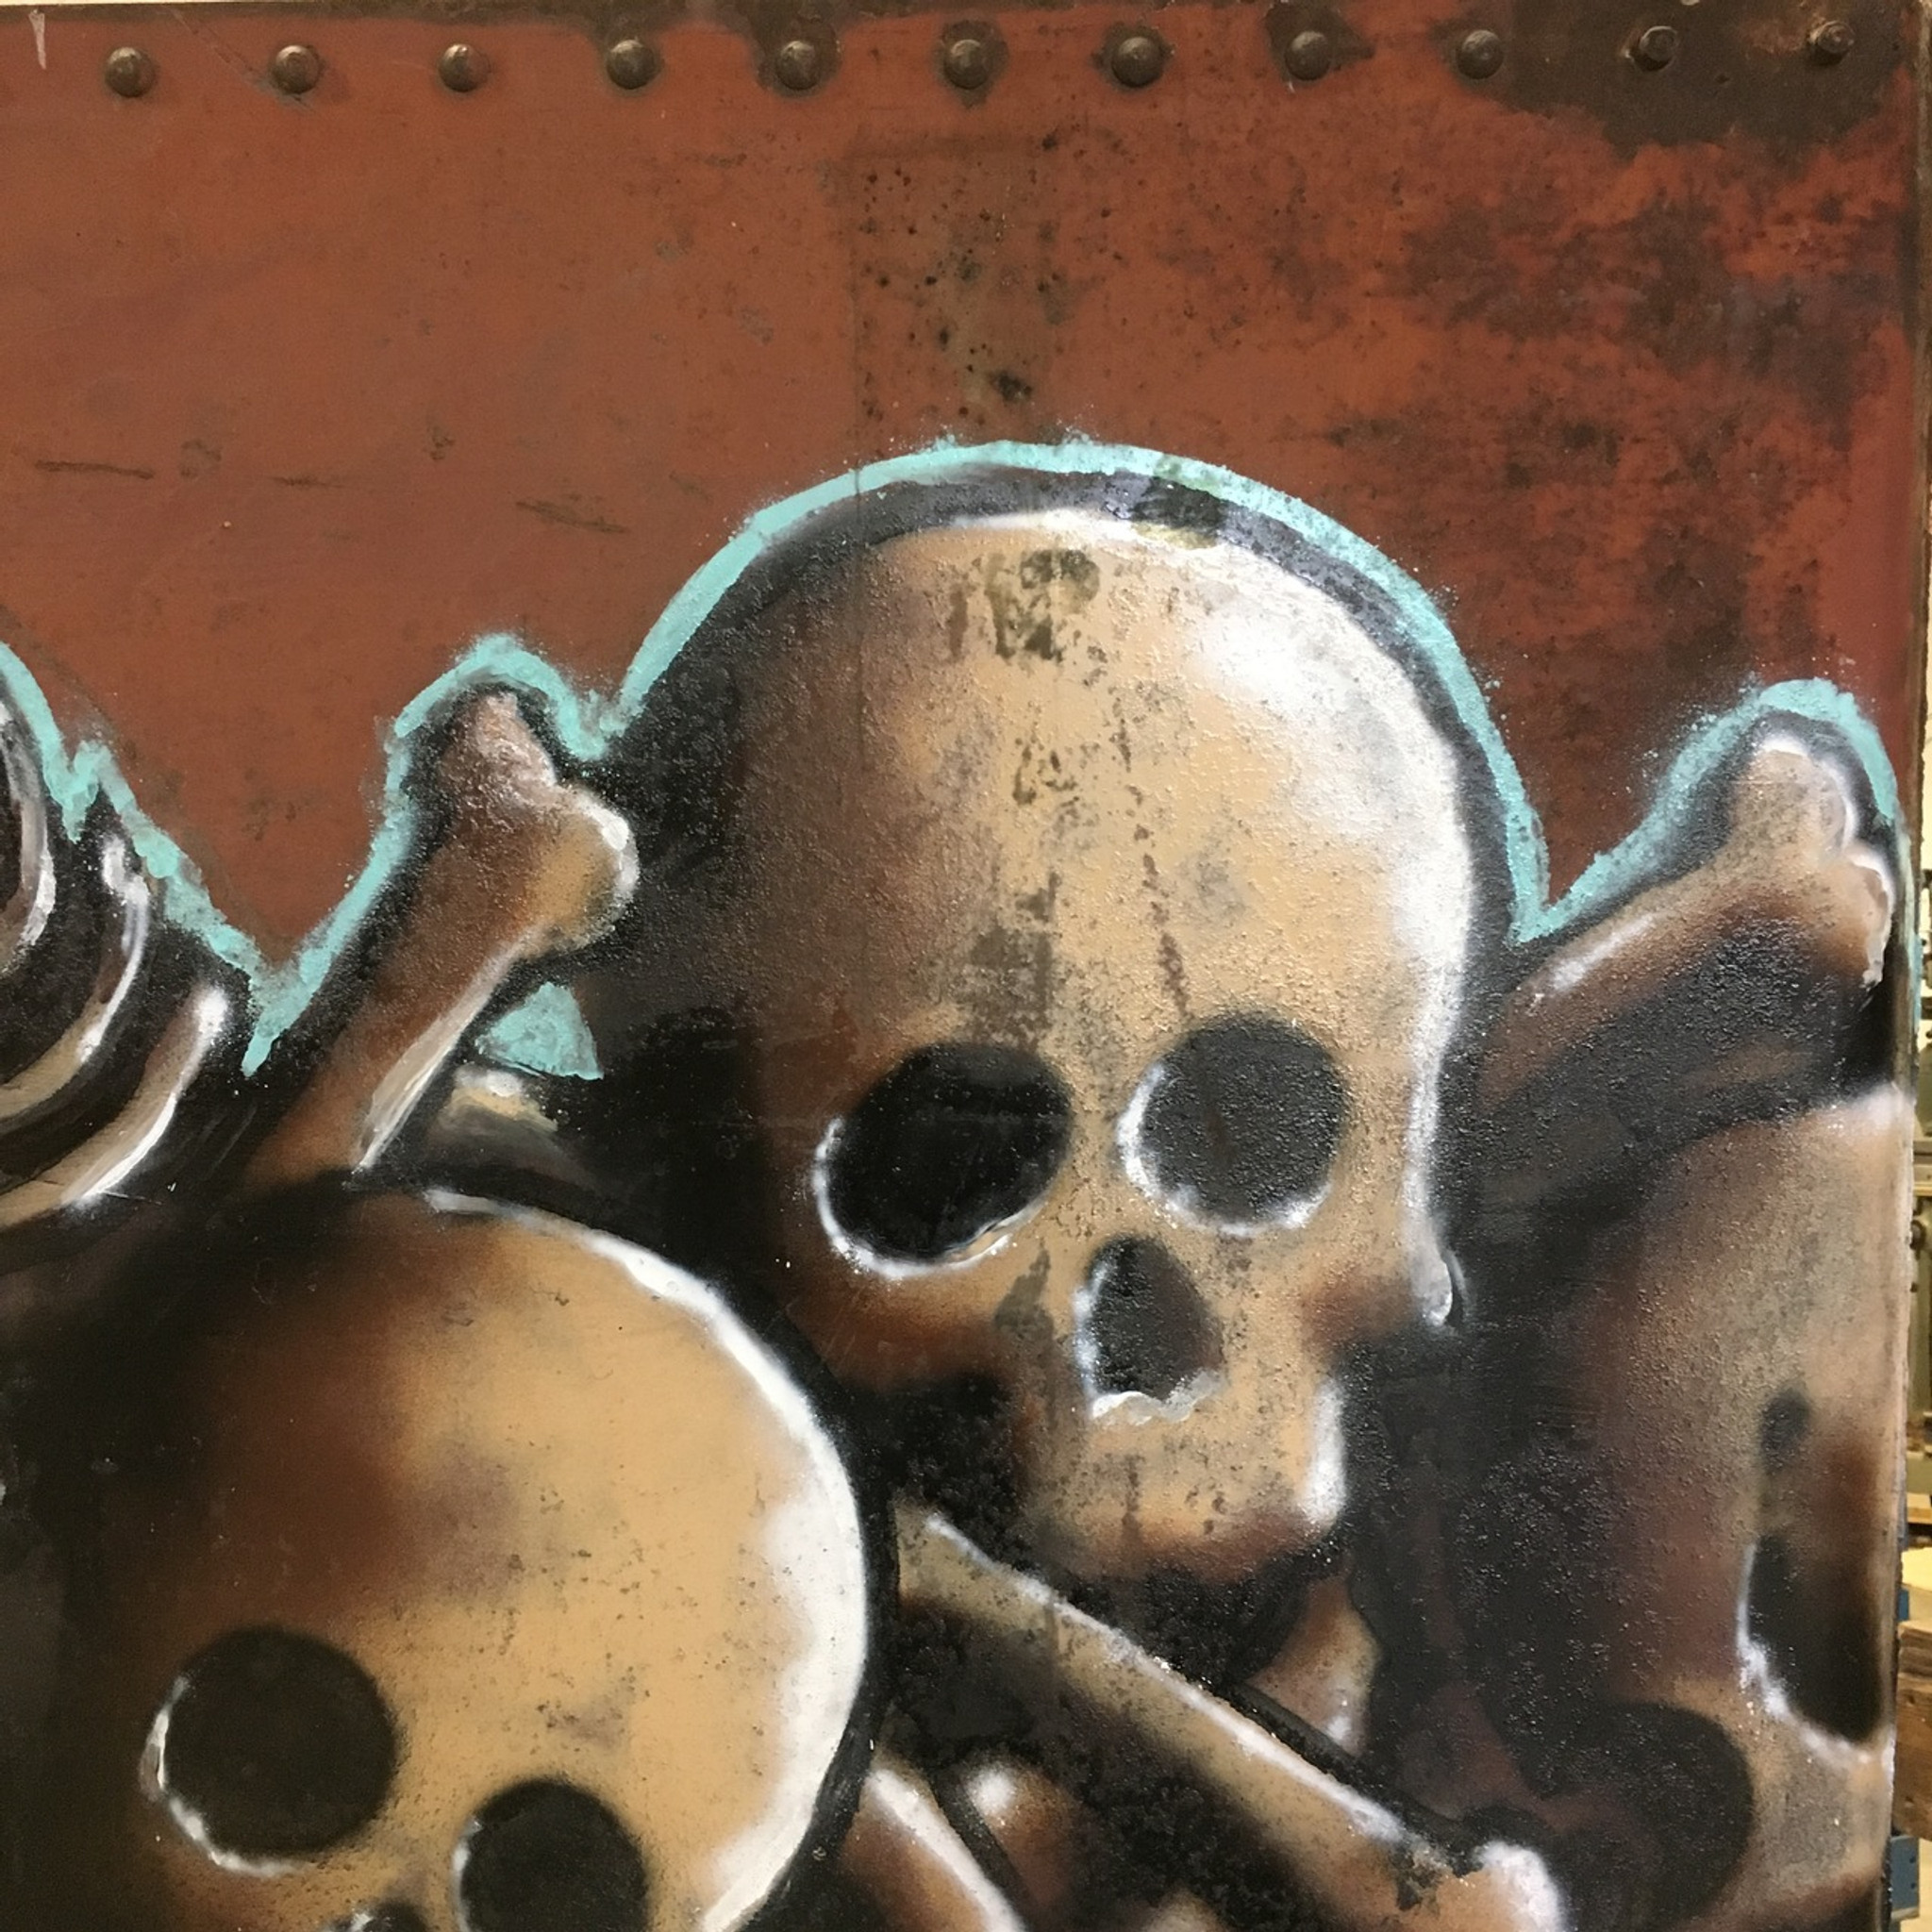 ICH skulls and bones fr8 art graff from Ichabod #ichabodtherailgod